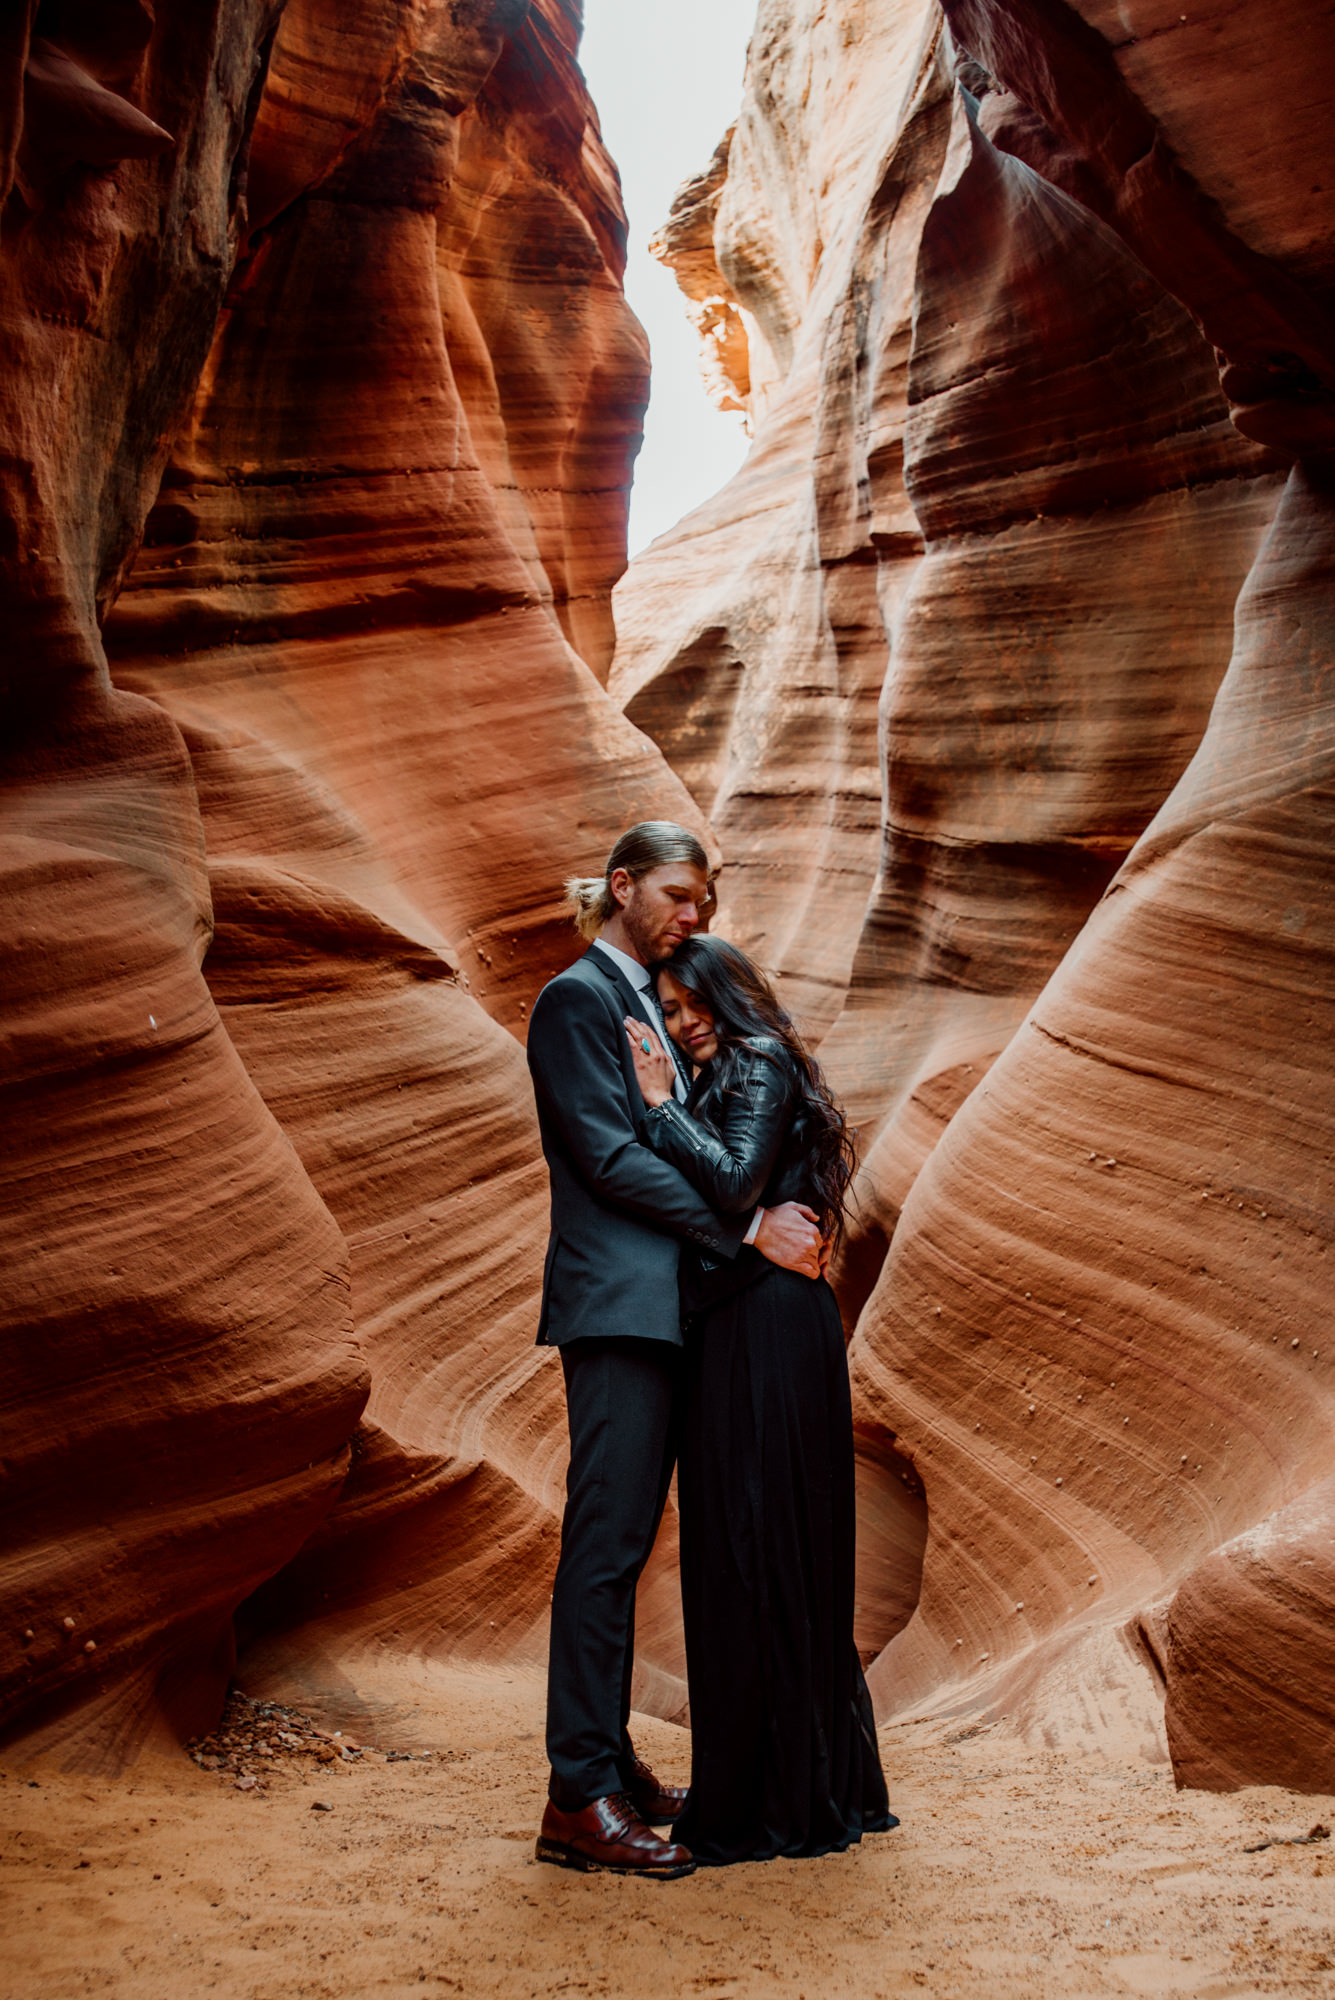 A stunning elopement wedding in the Arizona slot canyons